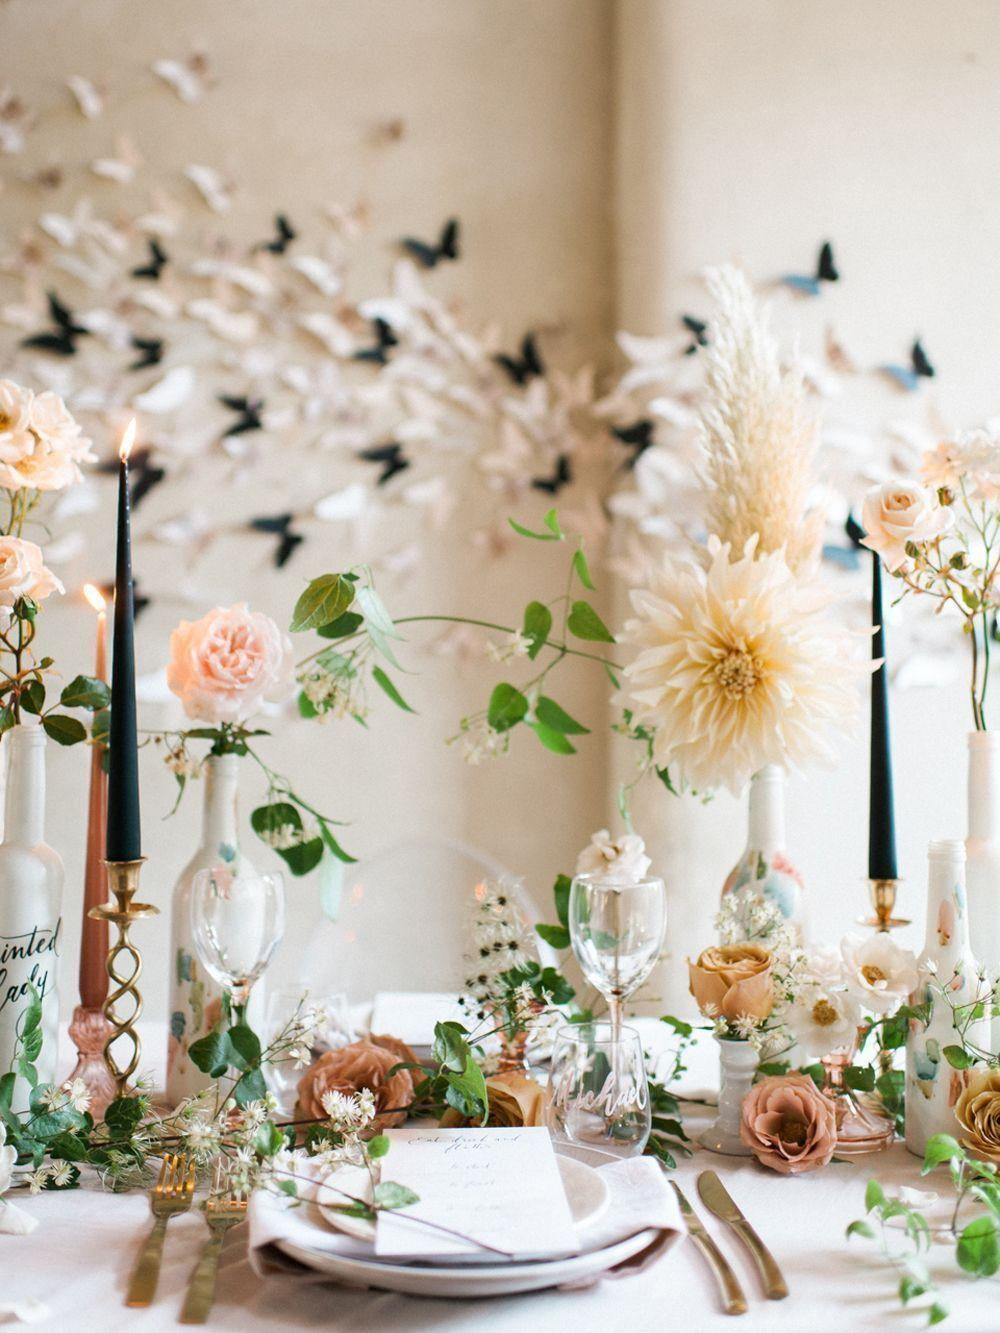 Wedding arrangements: 70 ideas for table, flowers and decoration 36